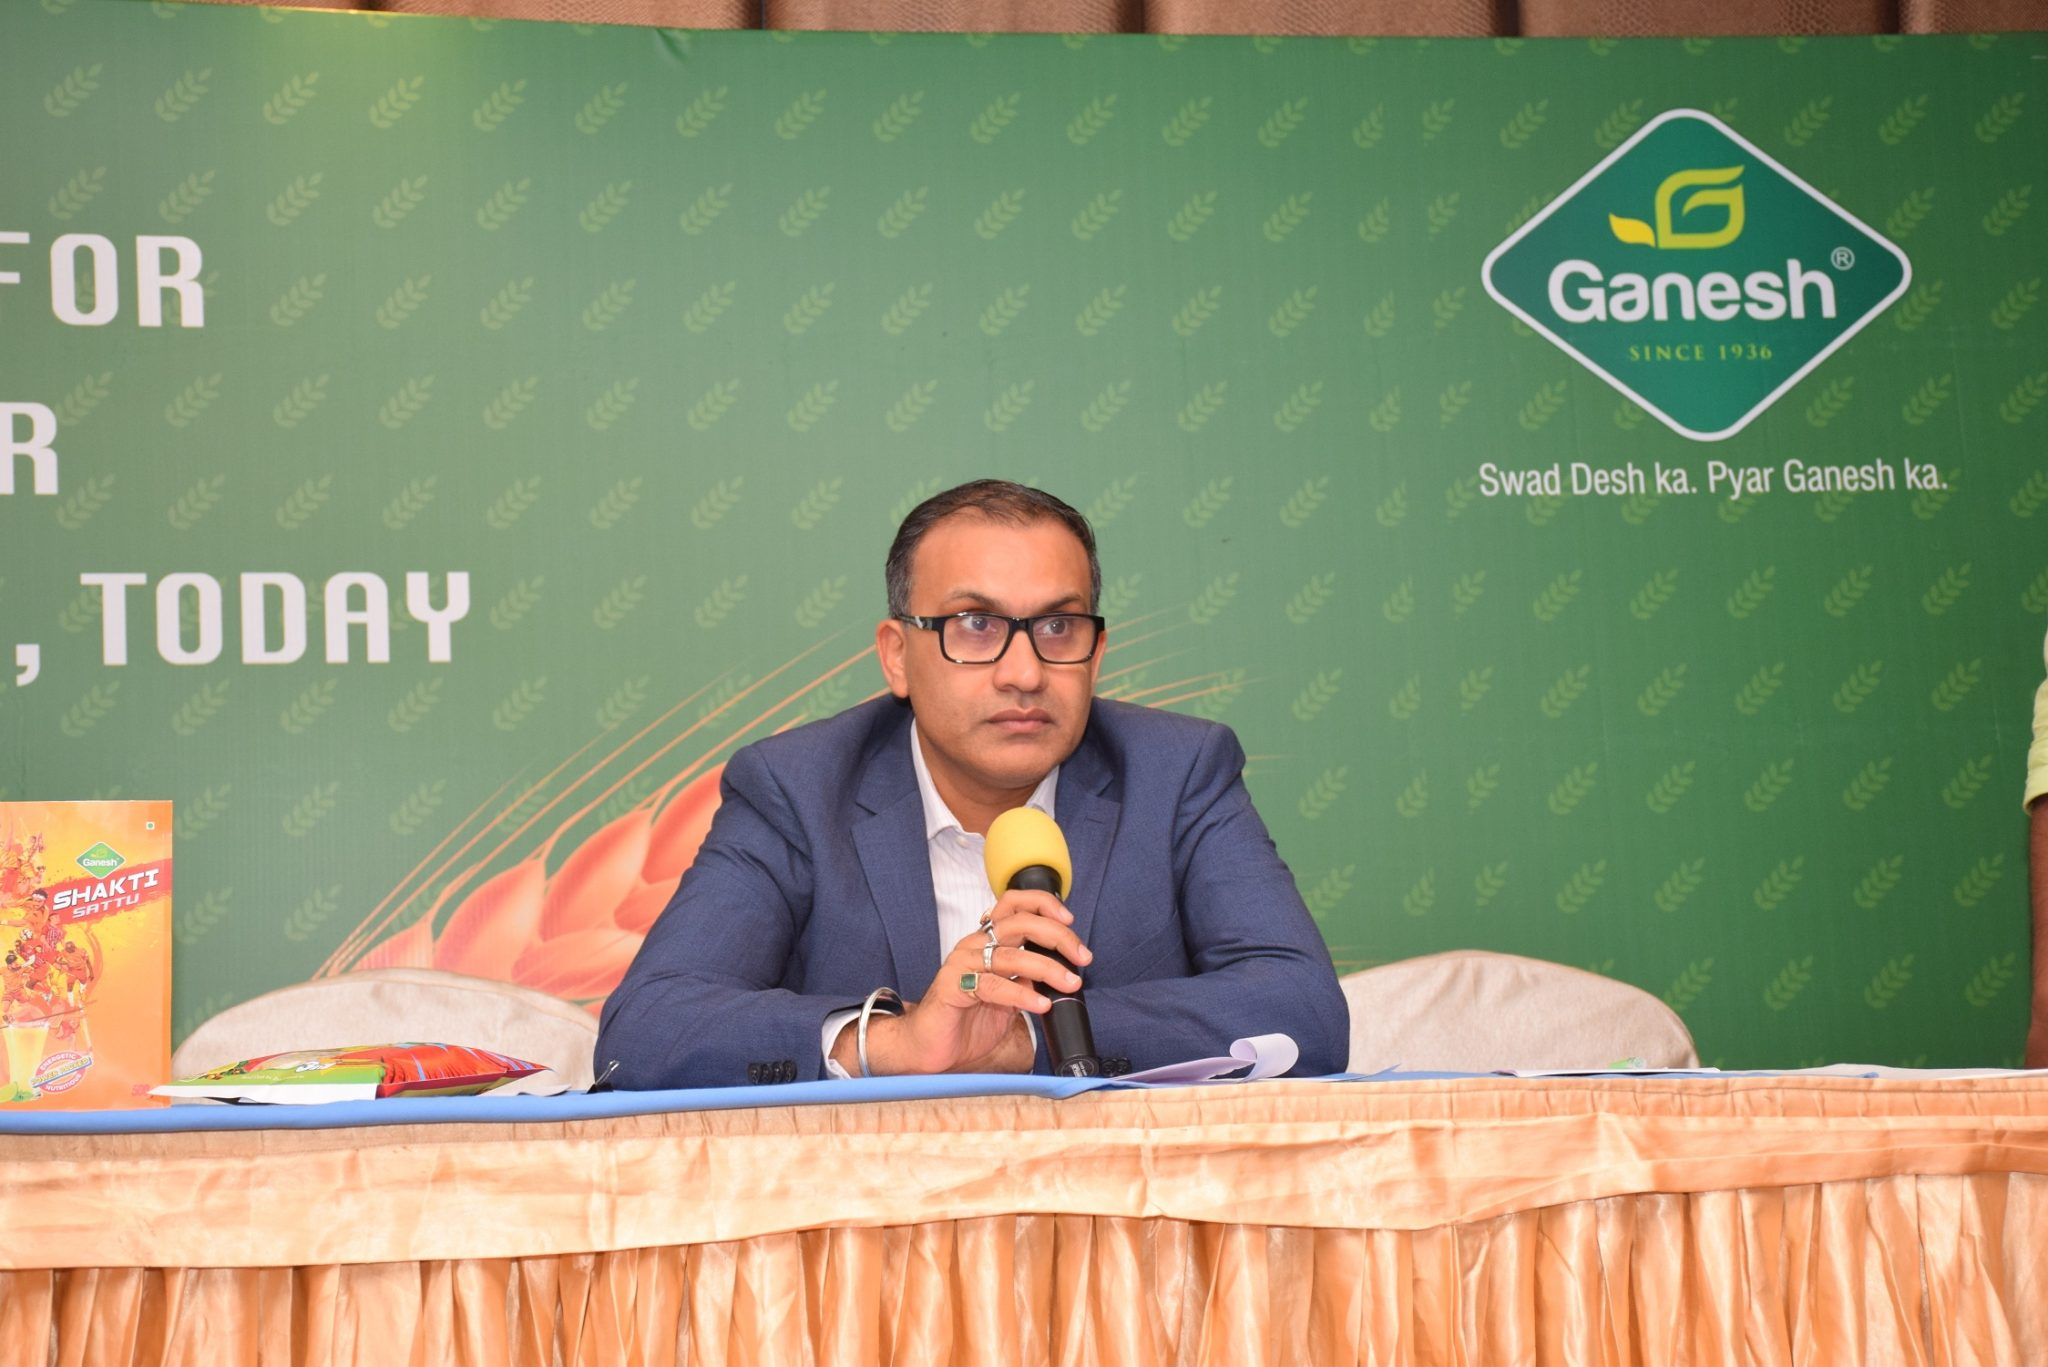 Ganesh Grains Limited announces Plans & New Product Launches